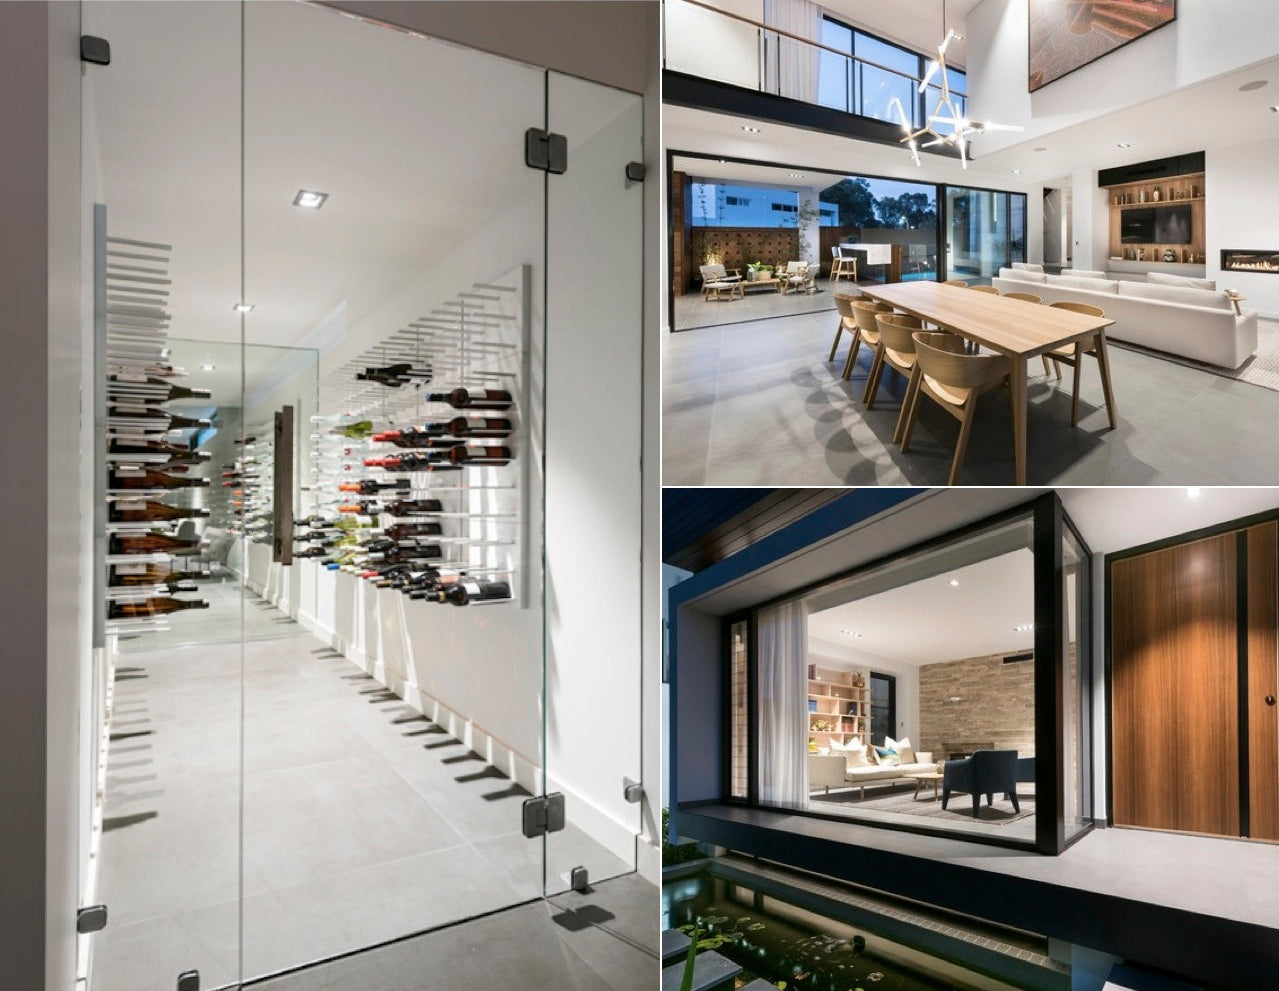 Vinkælder - vincent show home, by Austurban - Perth, Australia  - 50 paneler i Hvid -  Photo Credit: D-Max Photography